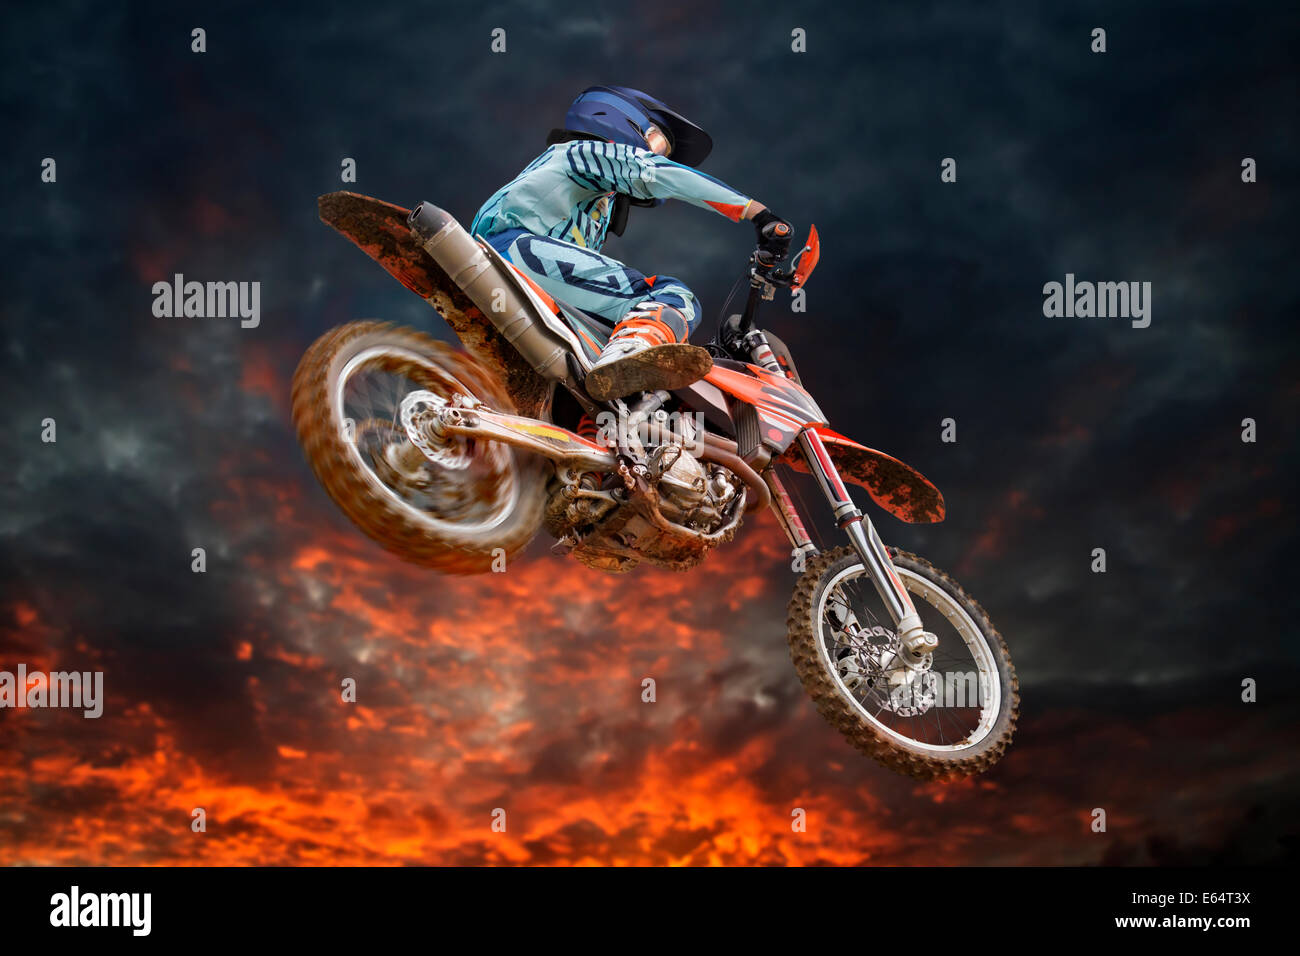 Jumping motocross rider with firestorm in the background and red glowing spinning rear wheel - Stock Image